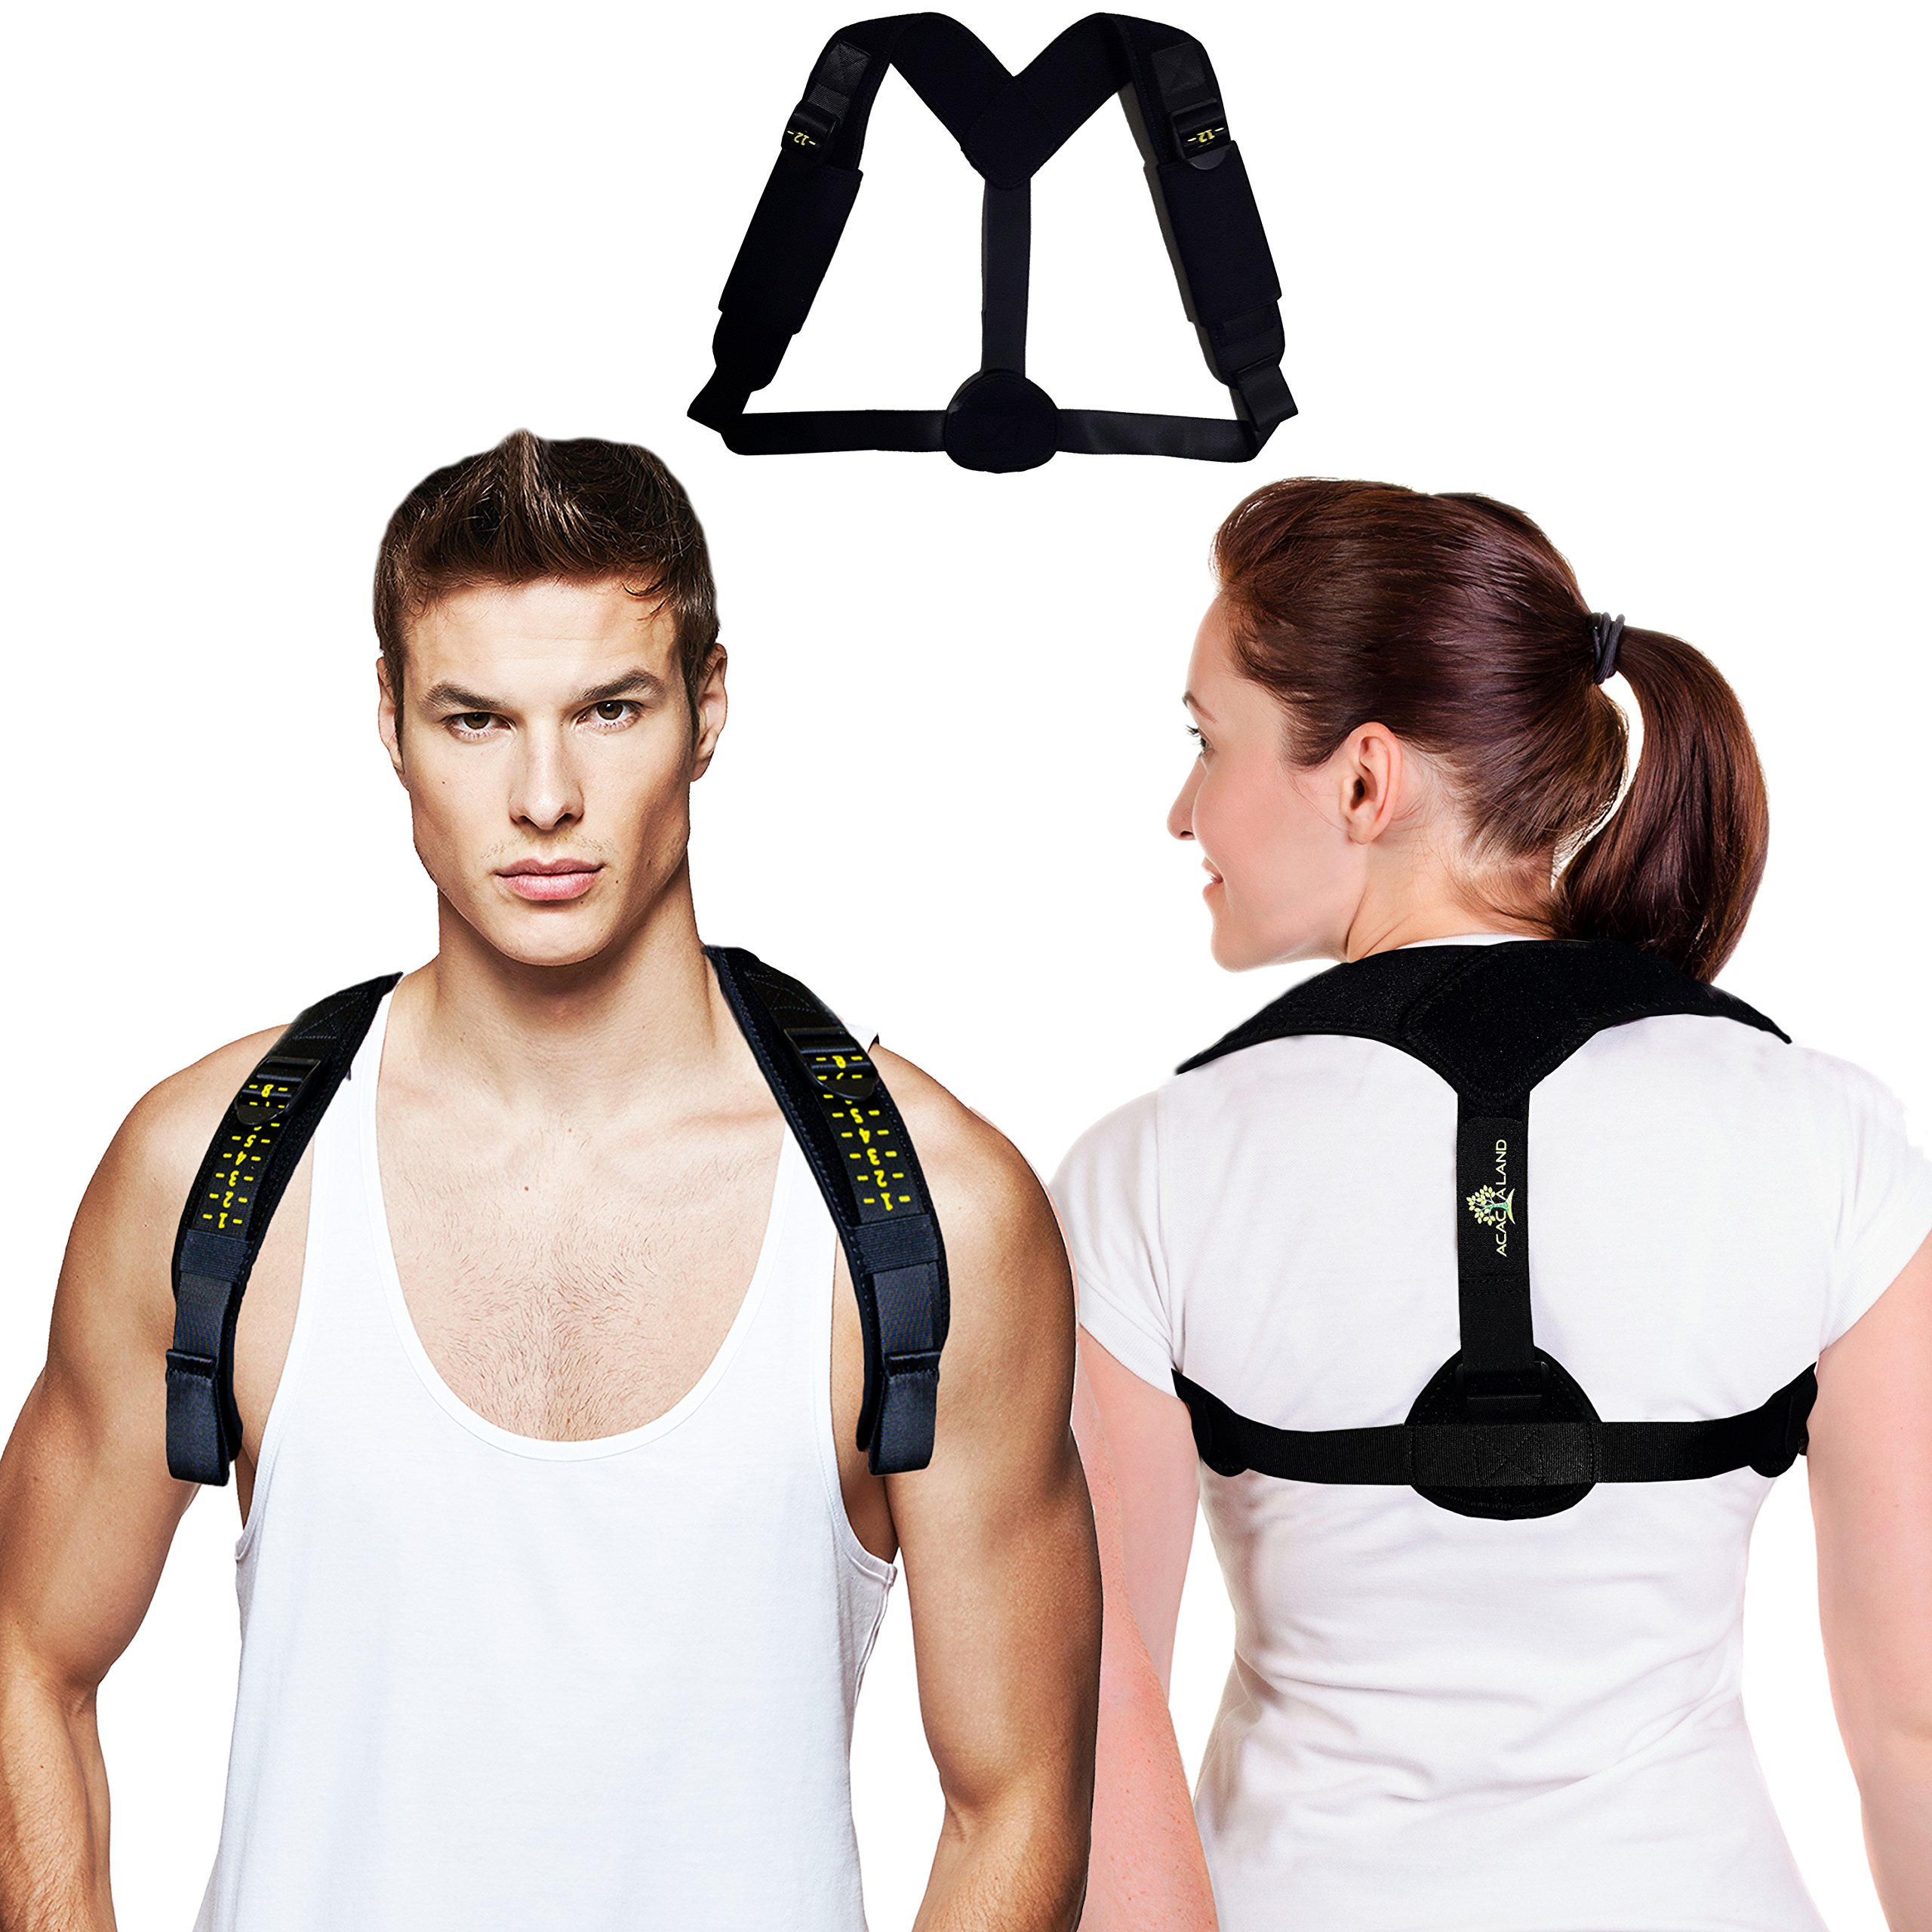 Back Posture Corrector for Women & Men - Effective and Comfortable - Support Brace for Slouching & Hunching & Bad Posture - Figure 8 Adjustable Clavicle Posture Brace for Shoulder & Neck Pain Relief